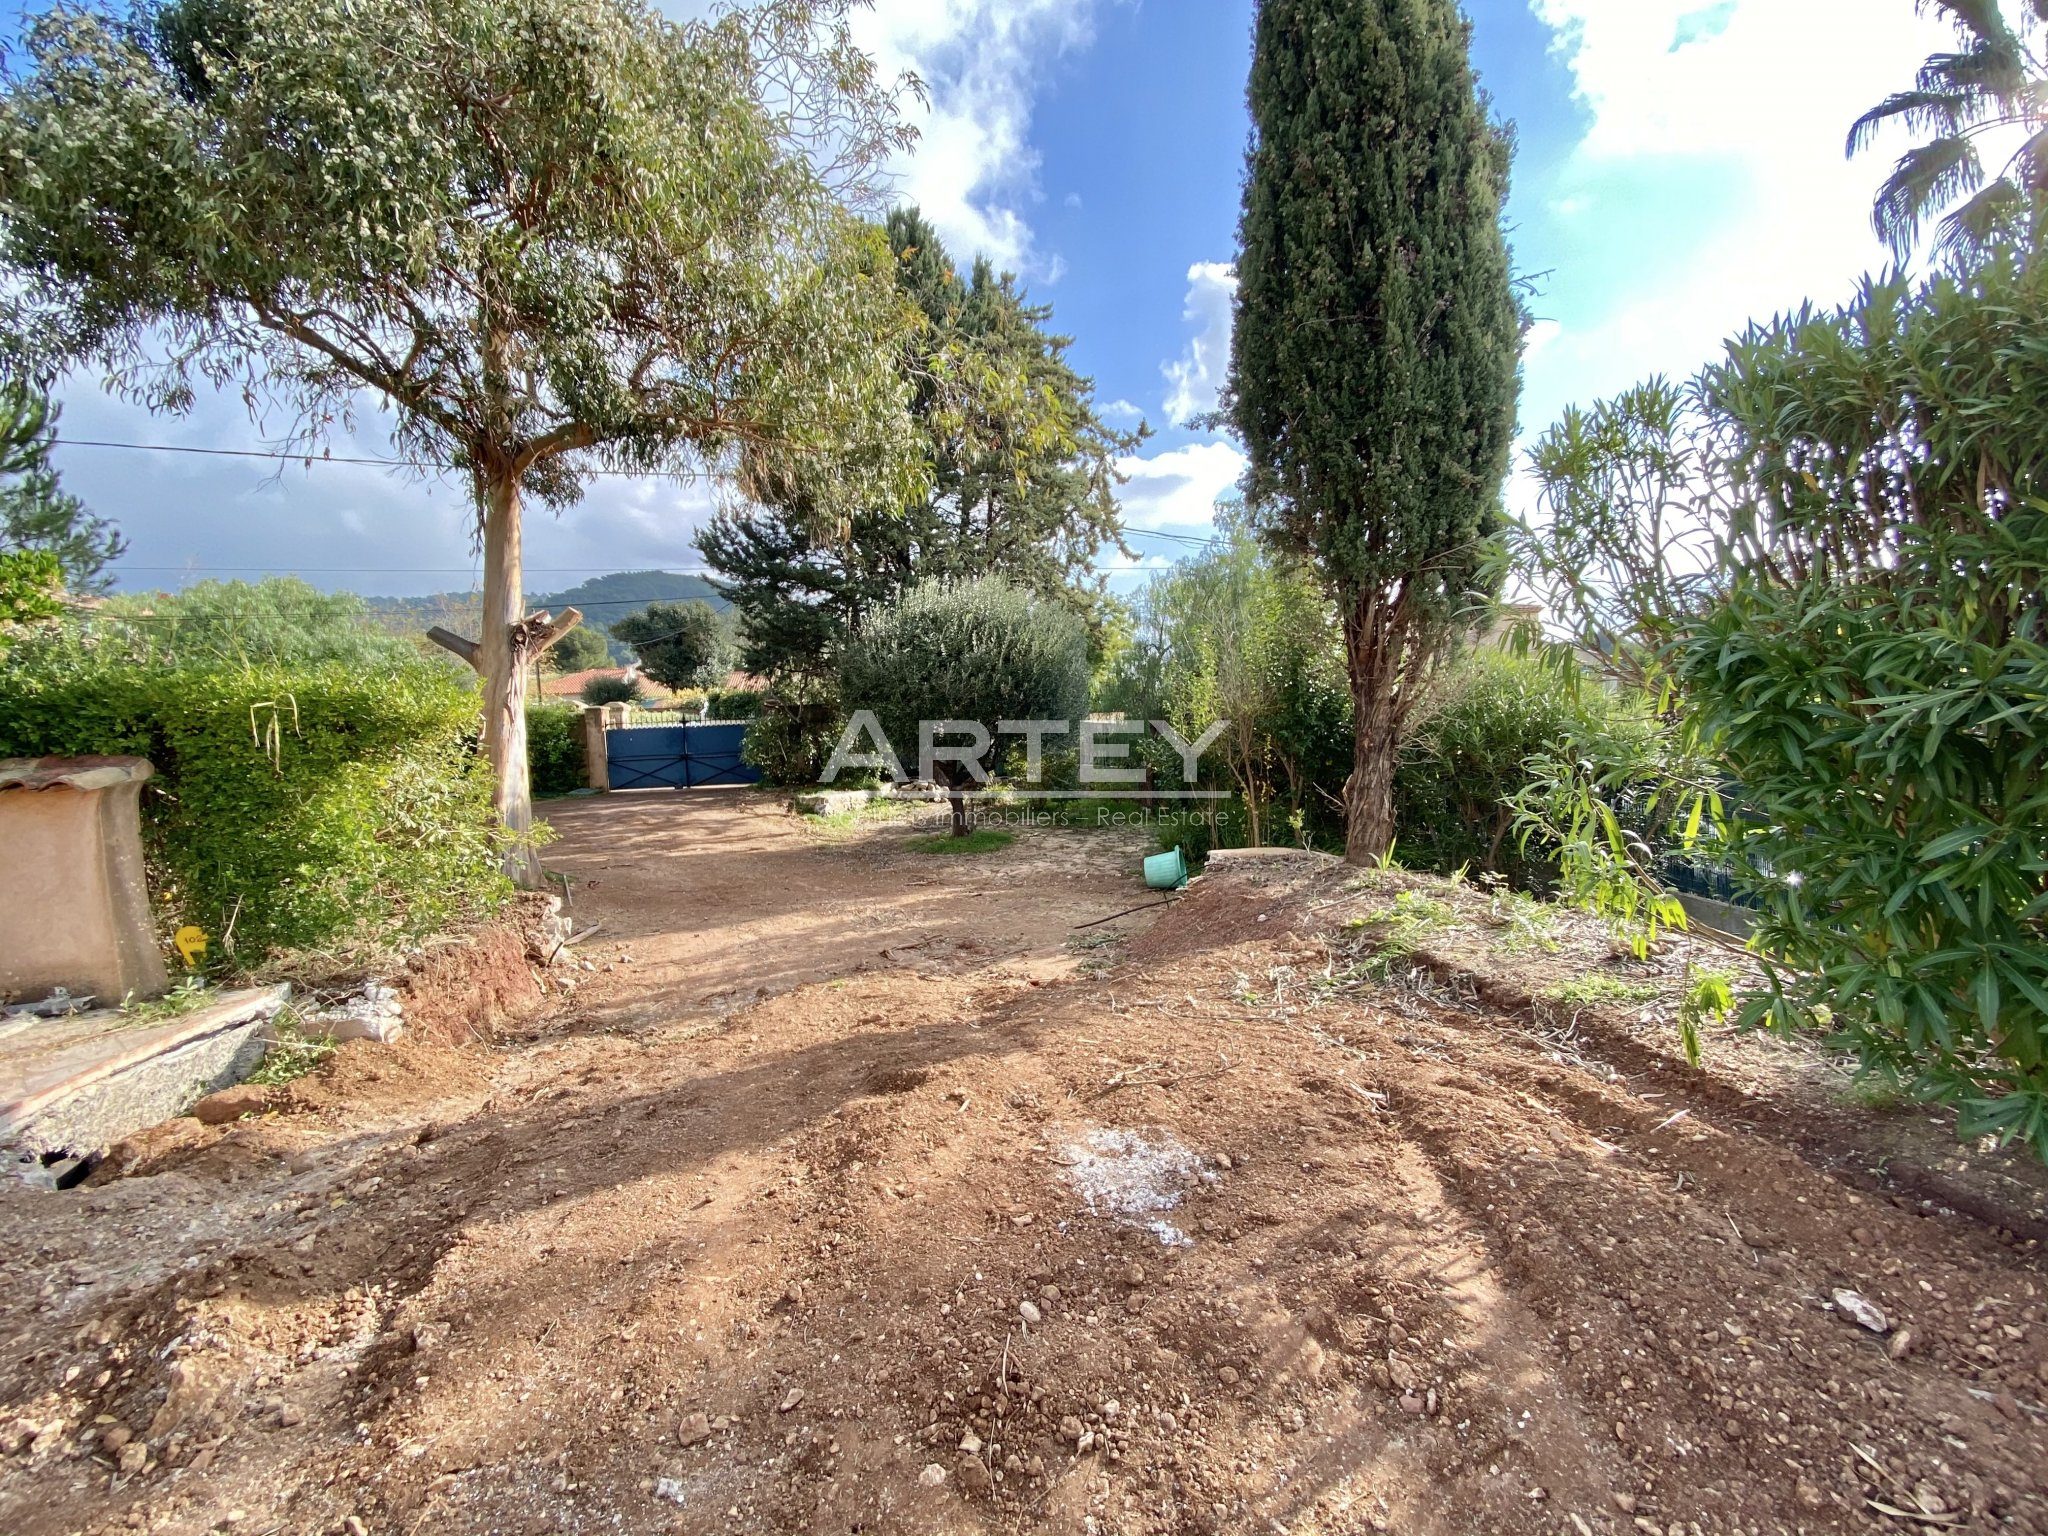 For sale Land Carqueiranne